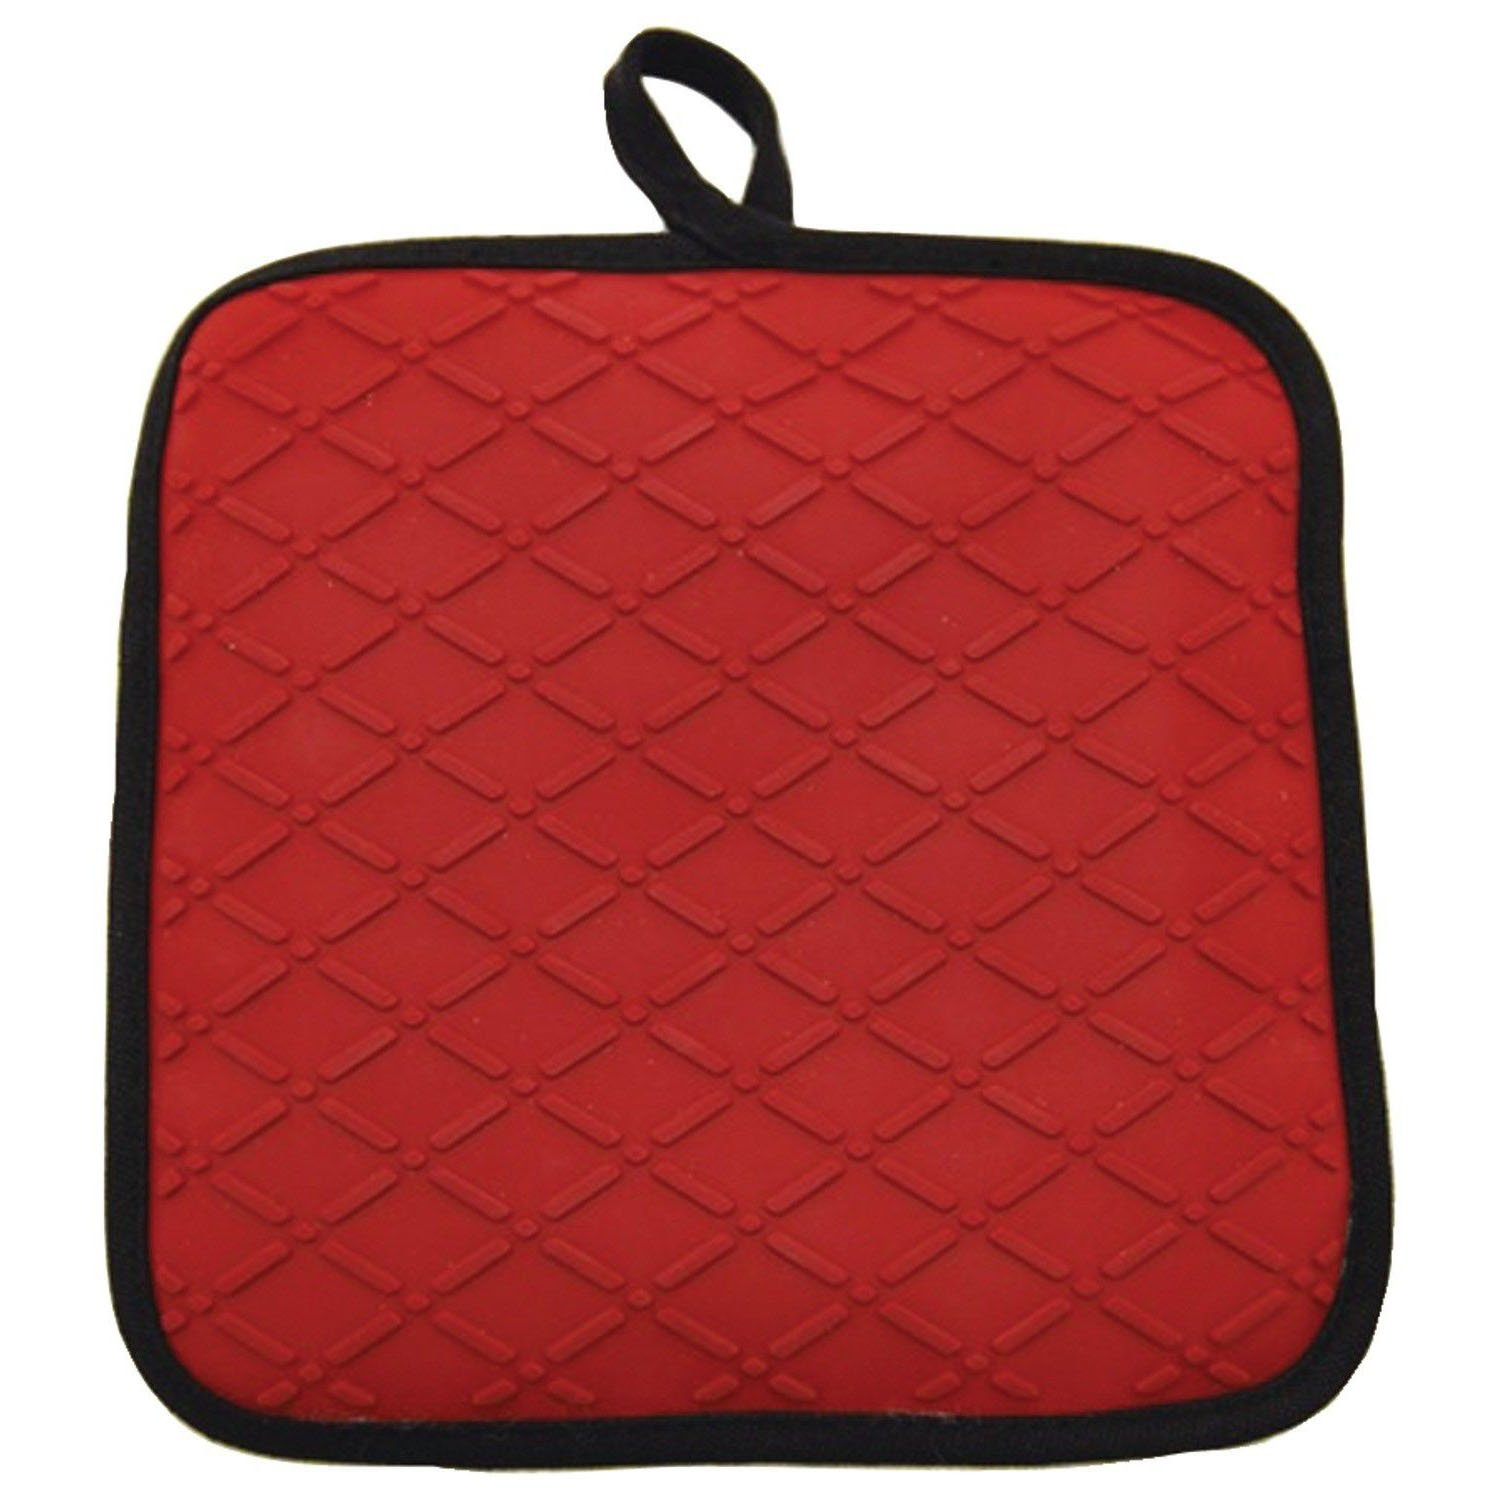 "Custom & Durable {9"" X 9'' Inch Each} One Single Mid Size ""Non-Slip"" Pot Holders Made of Silicone for Carrying Hot Dishes w/ Textured Modern Kitchen Restaurant Chef Style [Red & Black]"